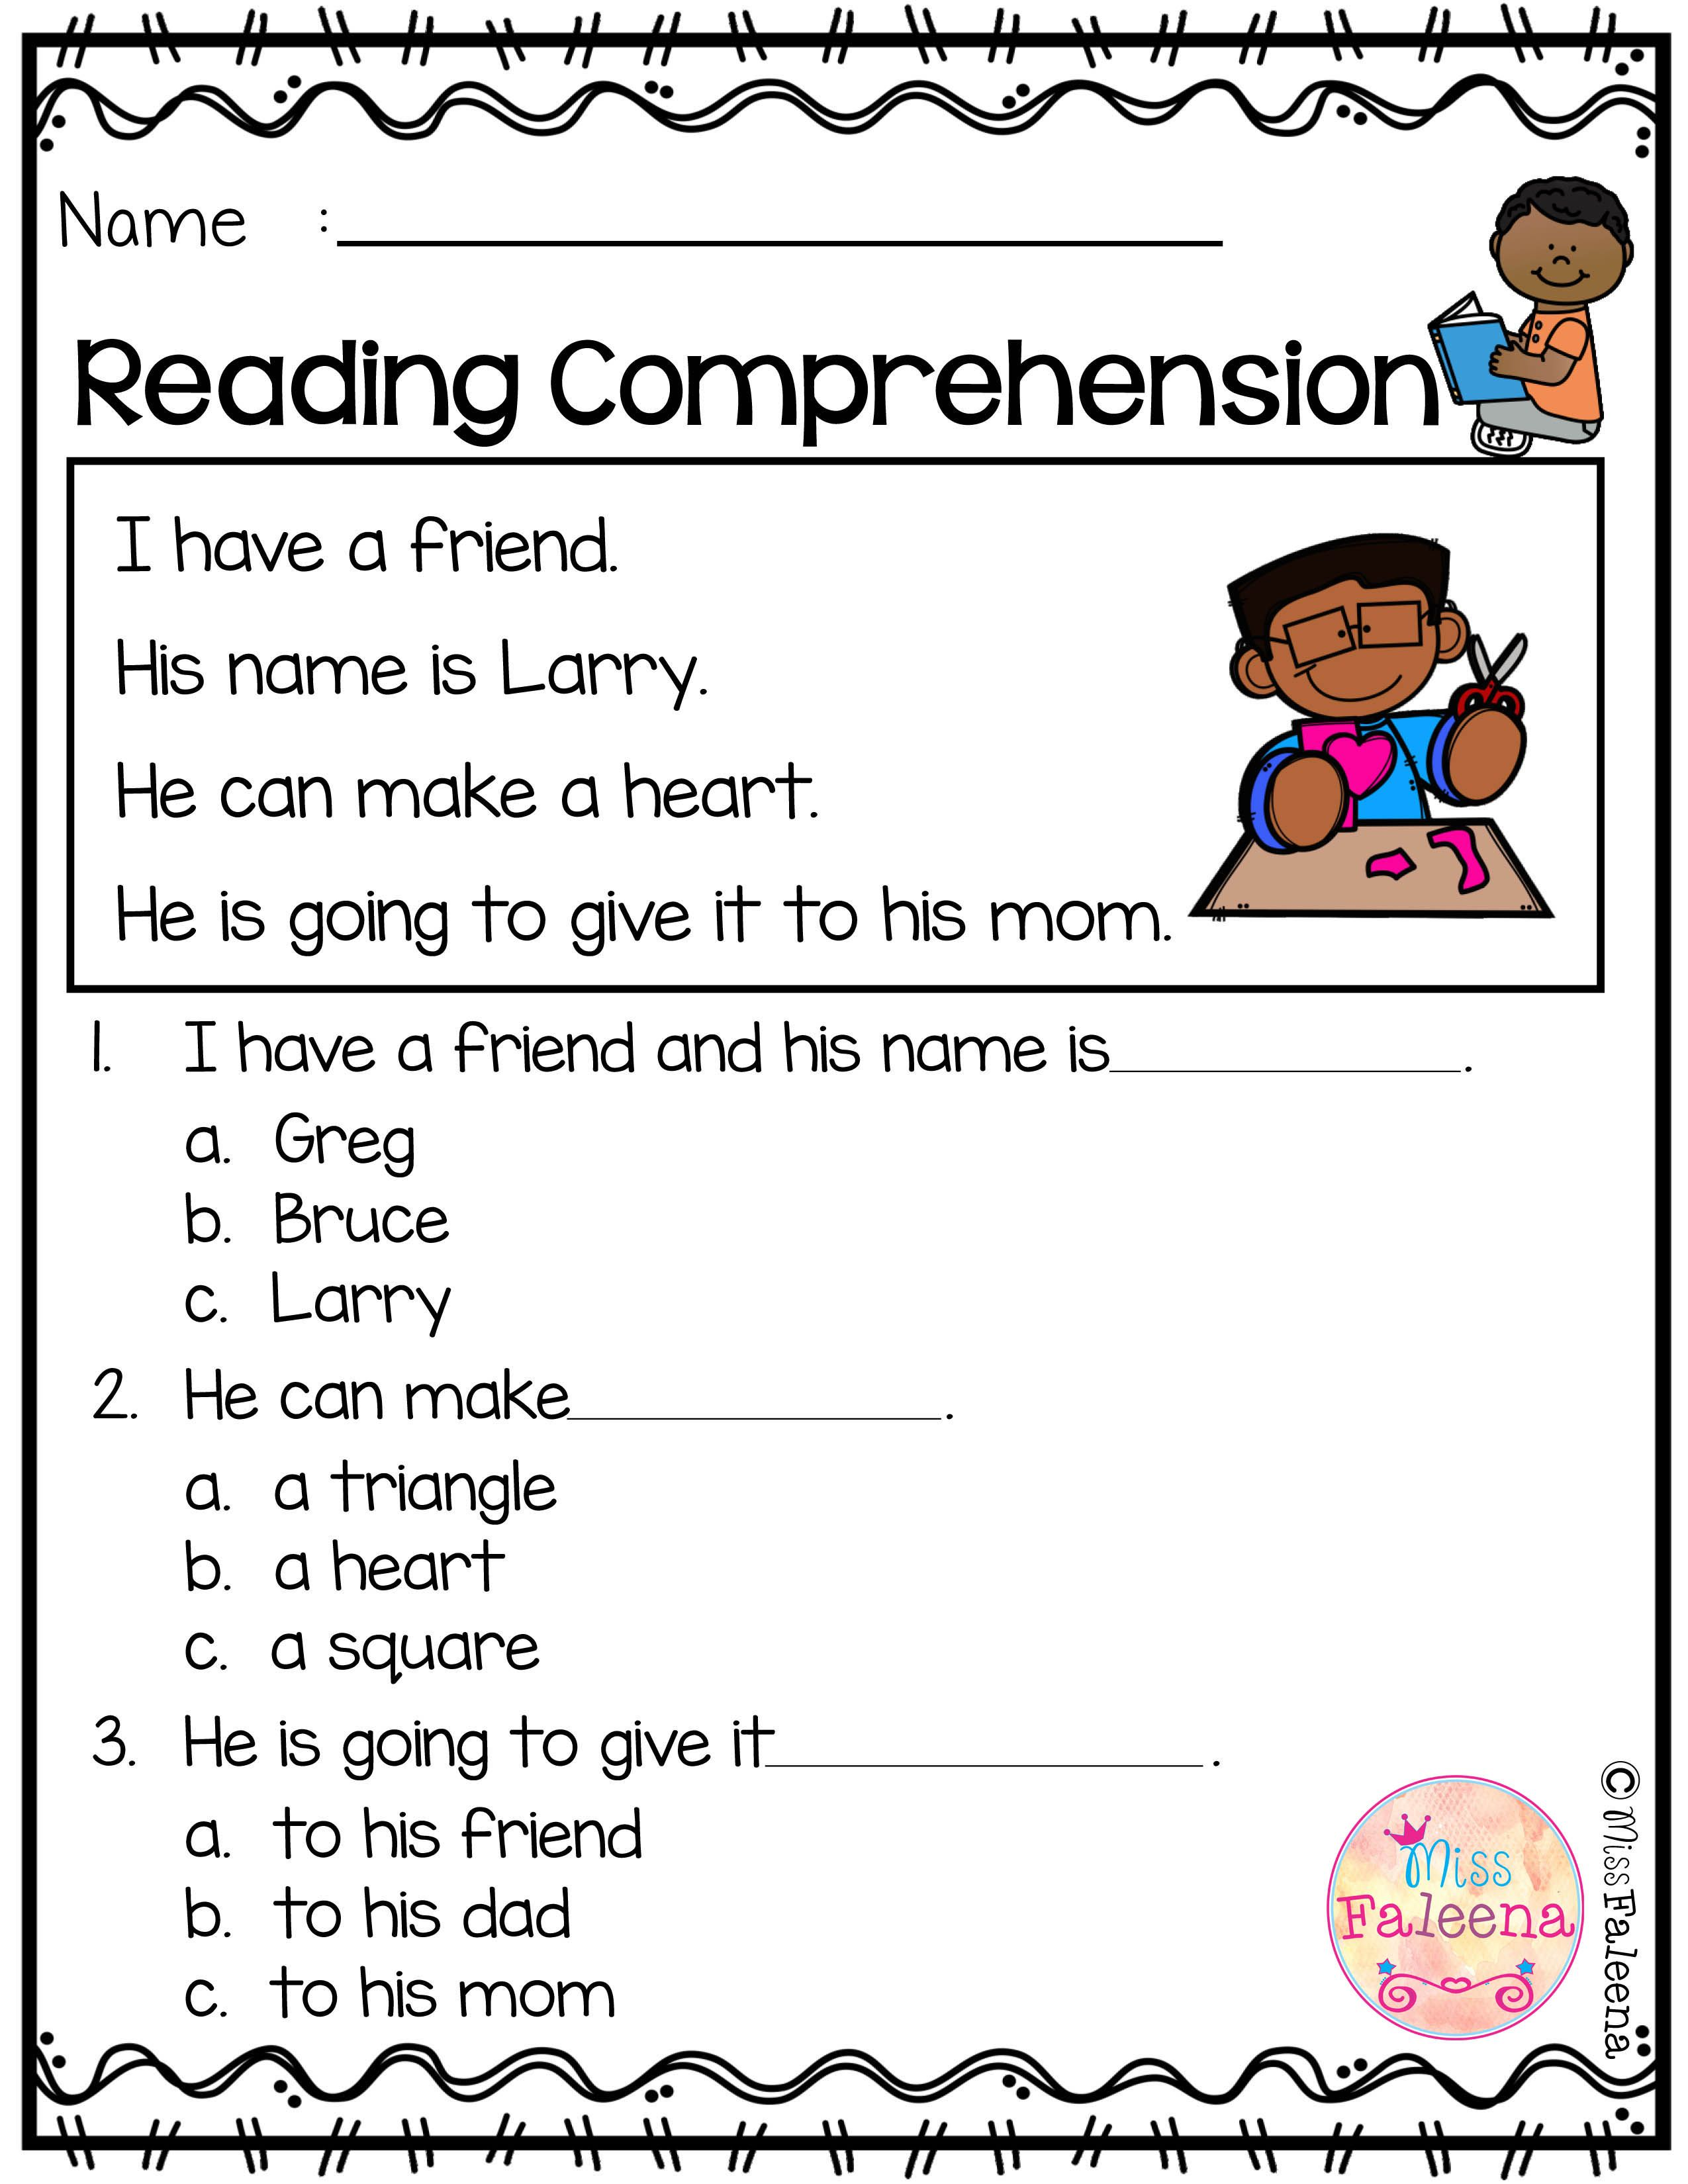 Free Reading Comprehension Is Suitable For Kindergarten Students Or B Reading Comprehension Kindergarten Reading Comprehension Reading Comprehension Worksheets [ 3300 x 2550 Pixel ]